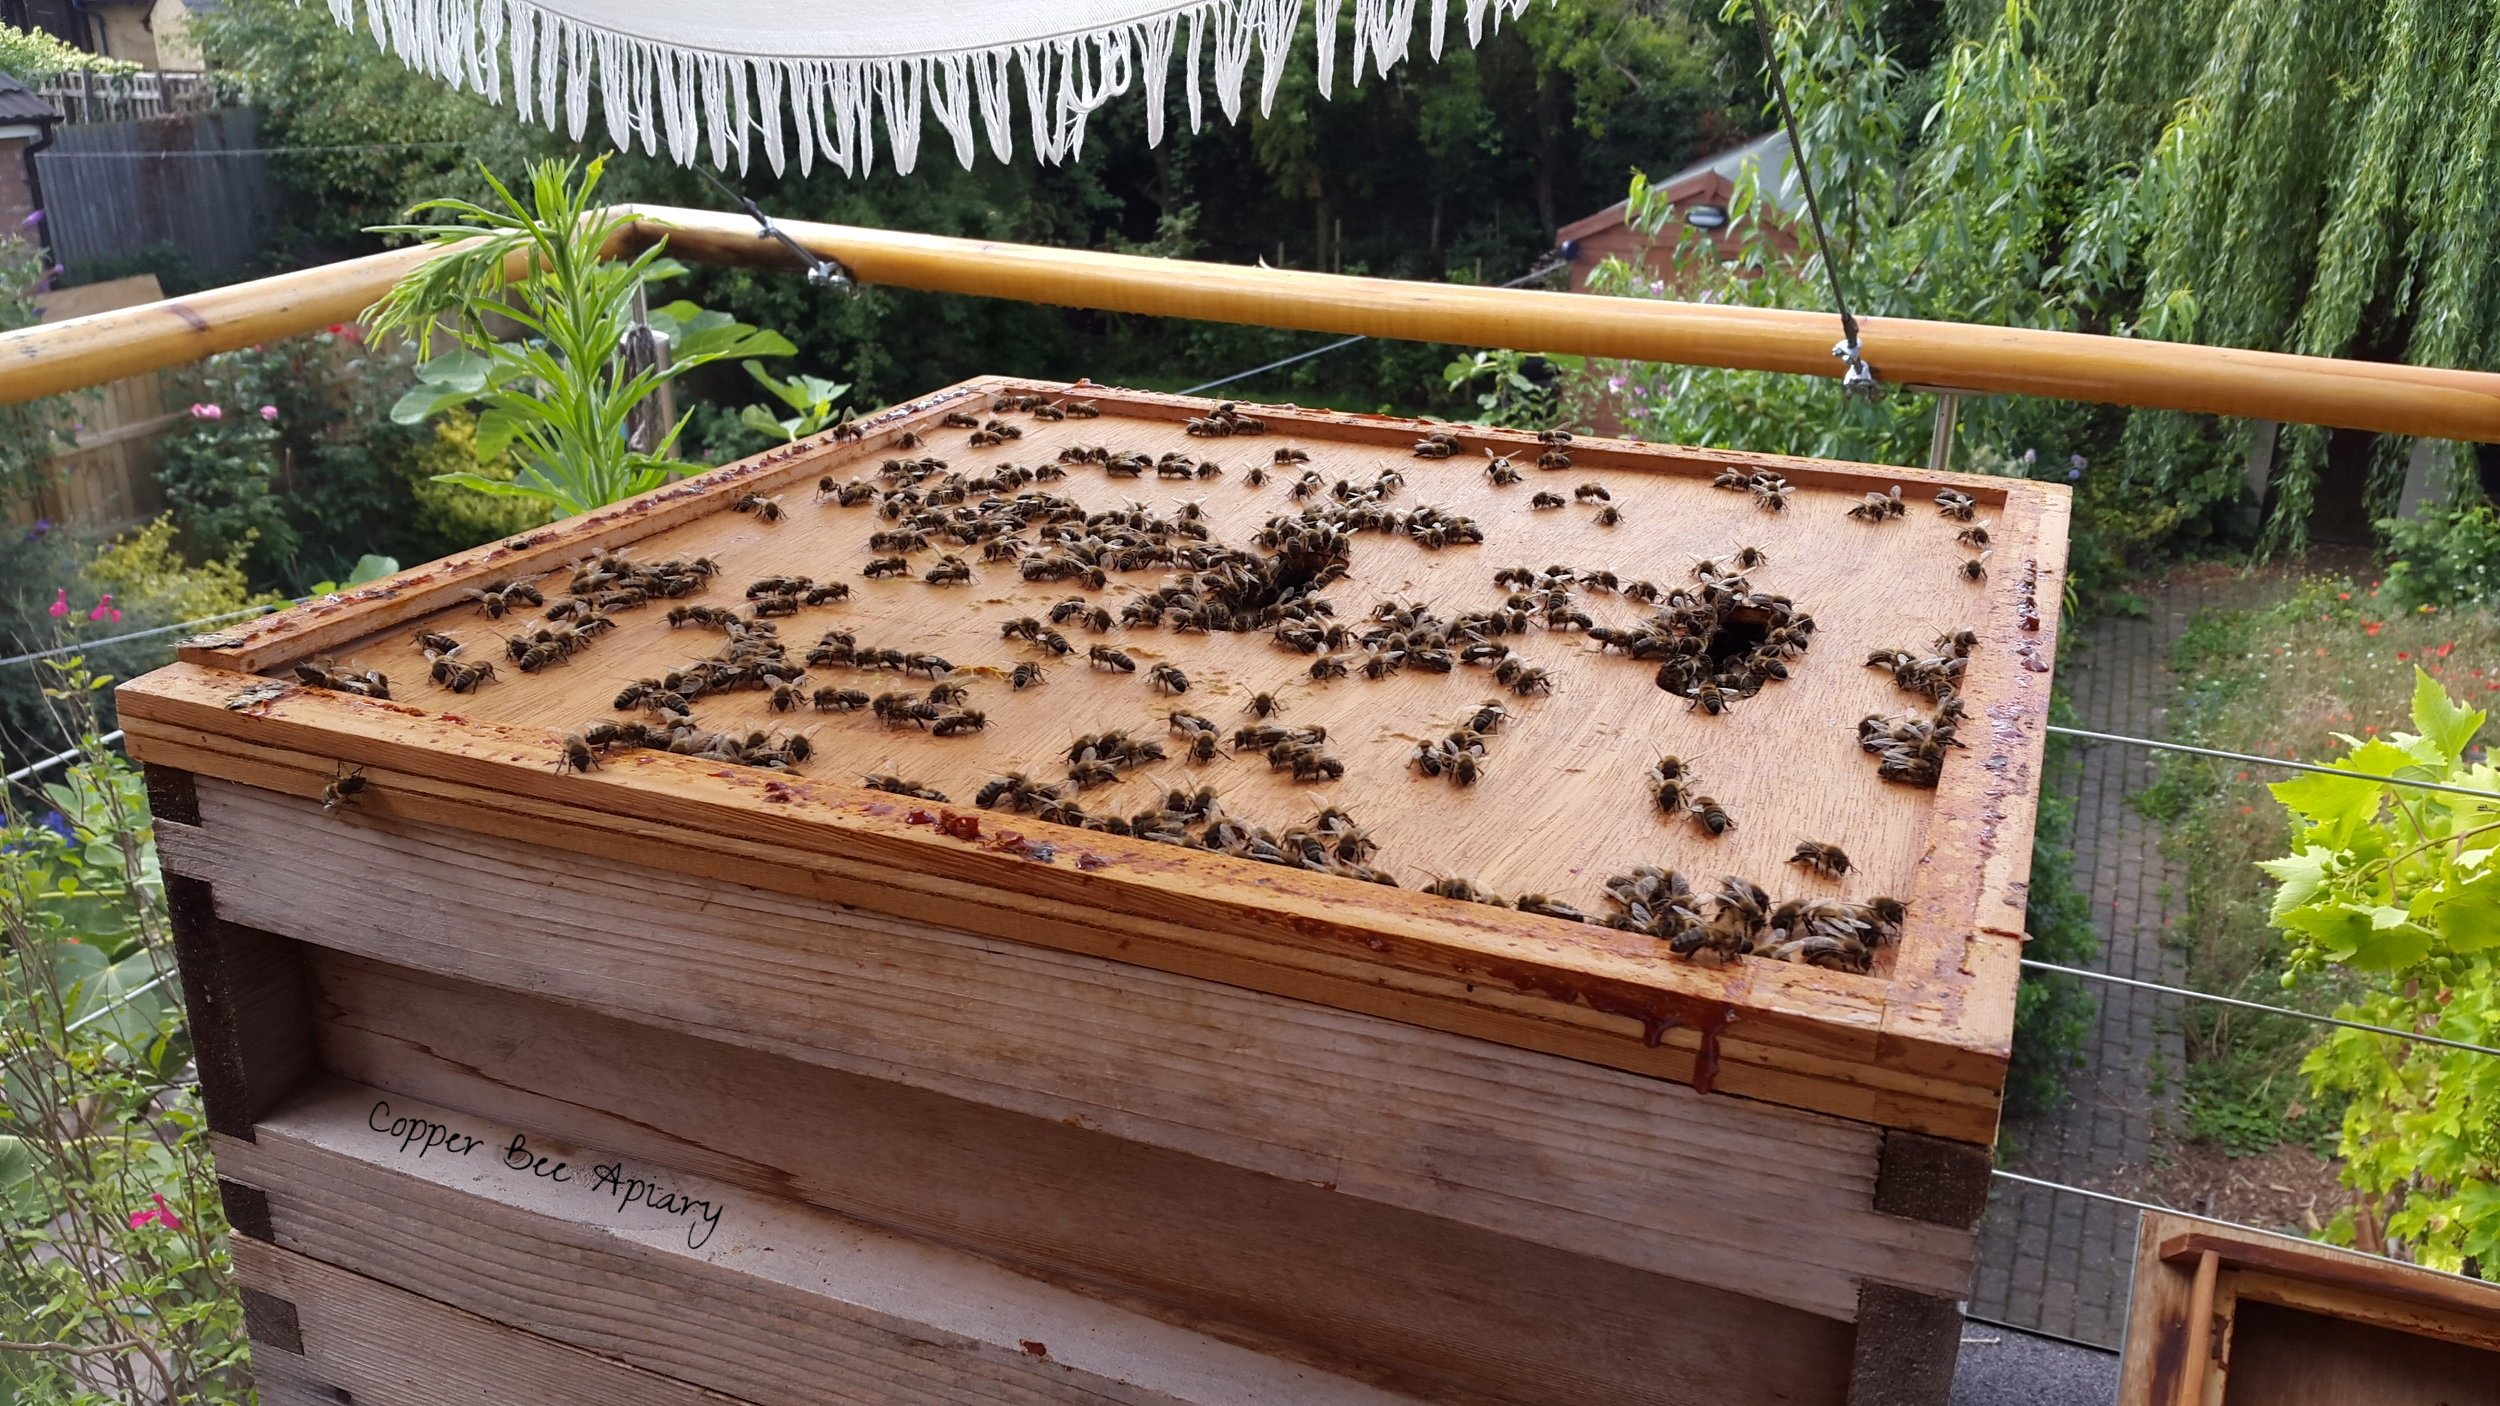 Bees on the crown board under the roof